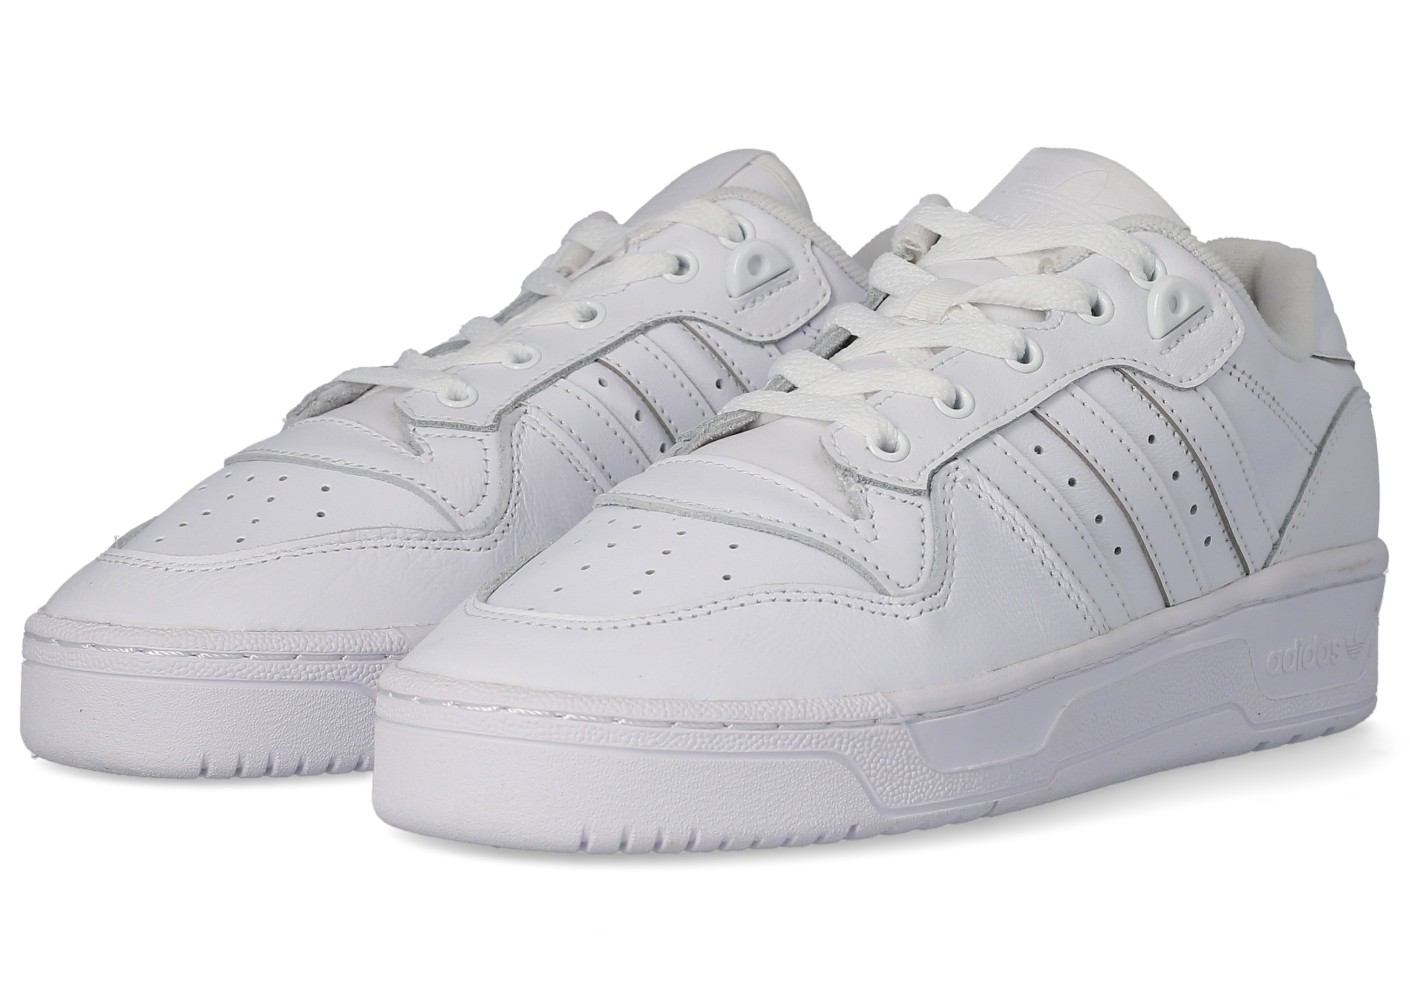 adidas Rivalry Low blanc Chaussures Baskets homme Chausport